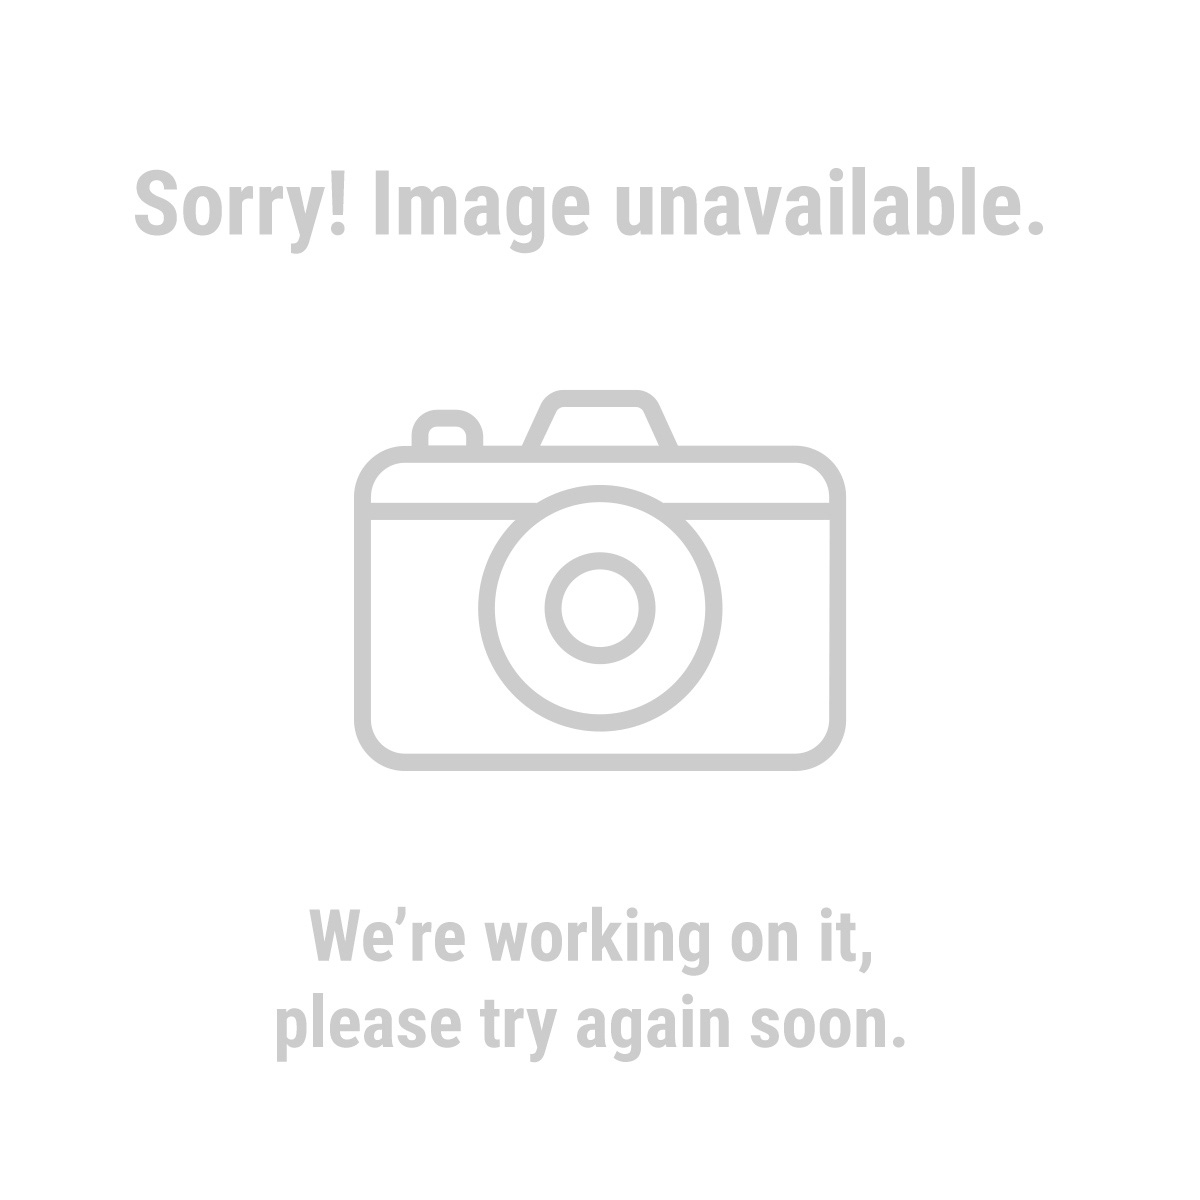 Greenwood® 61281 2 gal. Home and Garden Sprayer